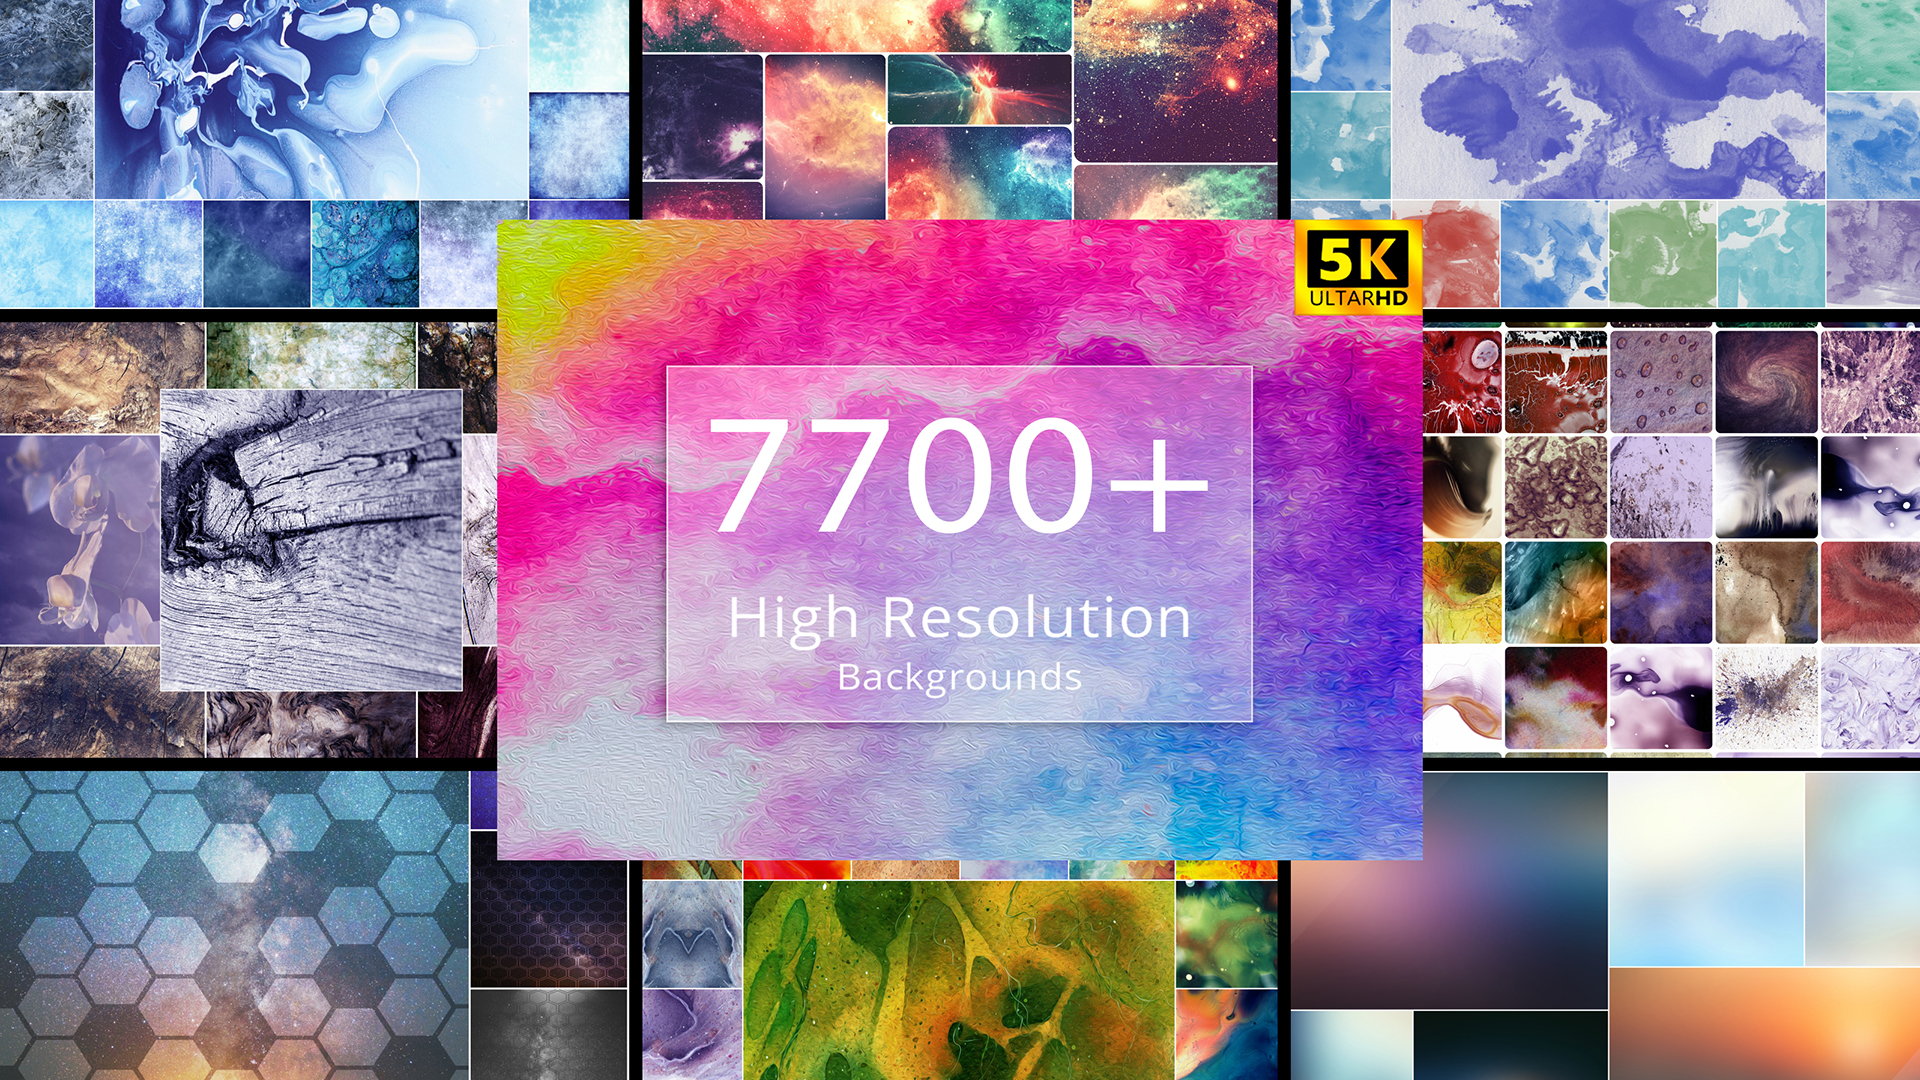 The Professional Graphic Bundle (70,000+ Resources), Design, Photo & Graphics Software Screenshot